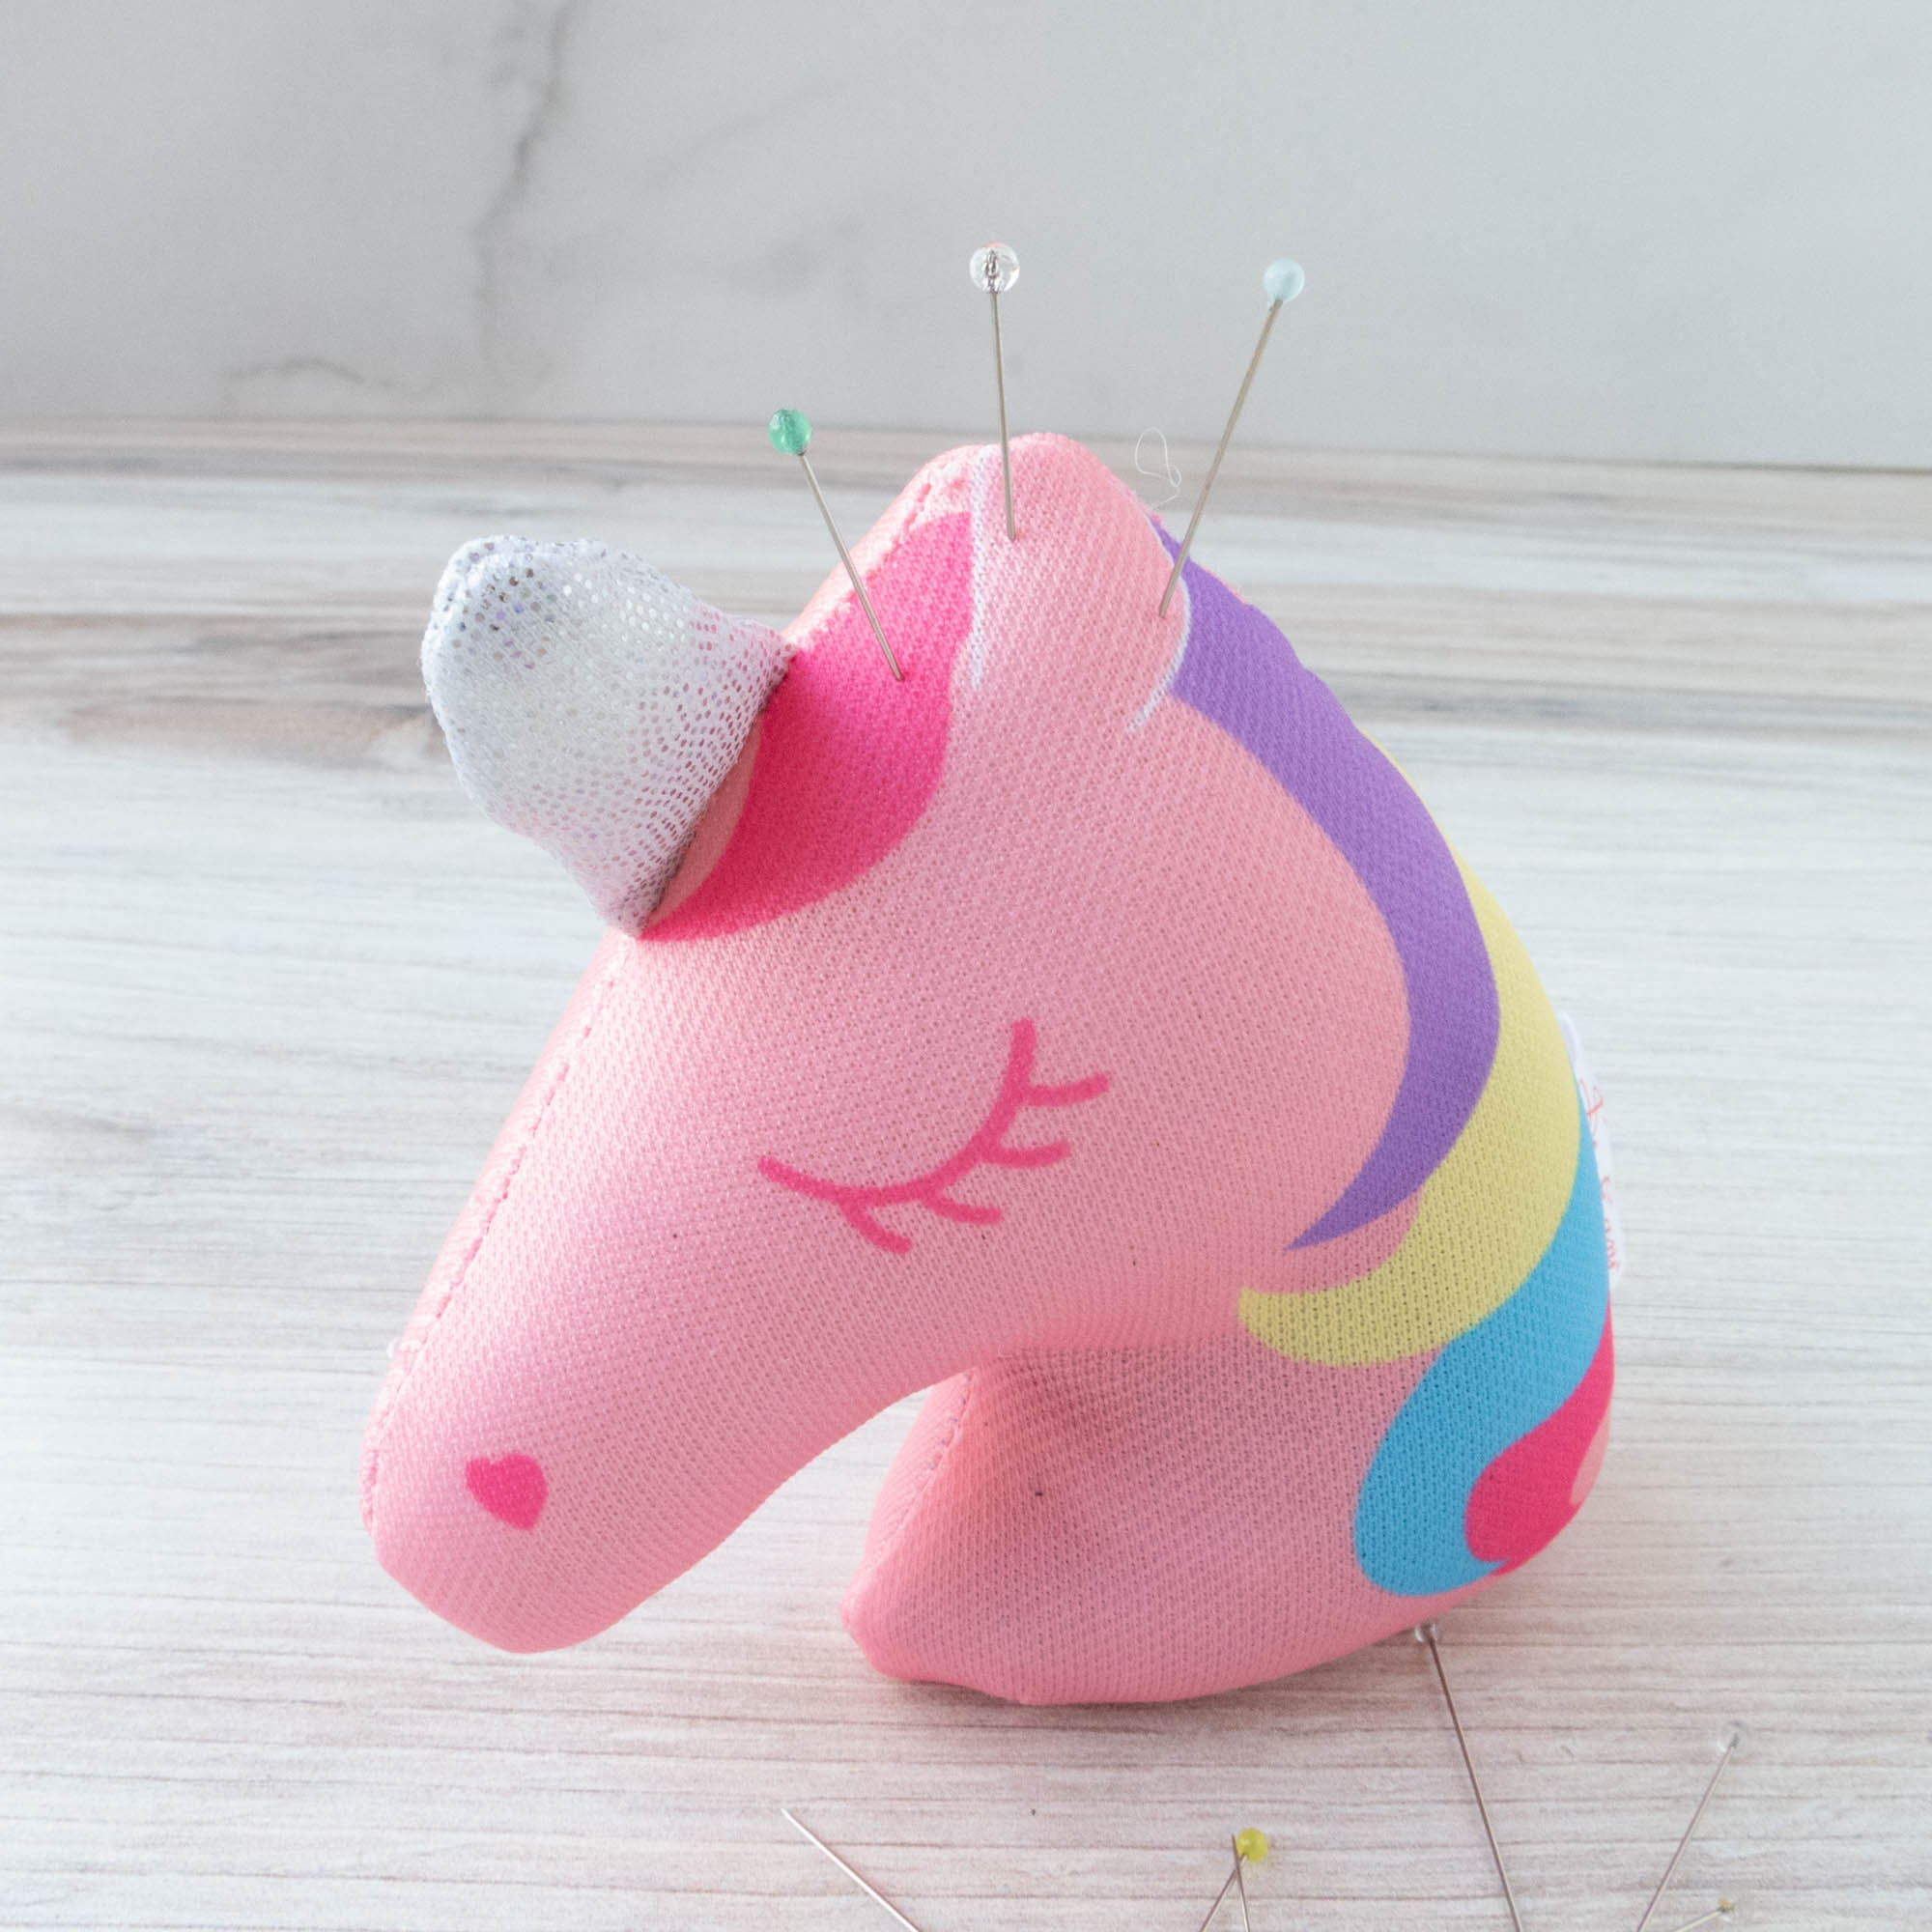 Cute Unicorn Pincushion Pincushion - Snuggly Monkey